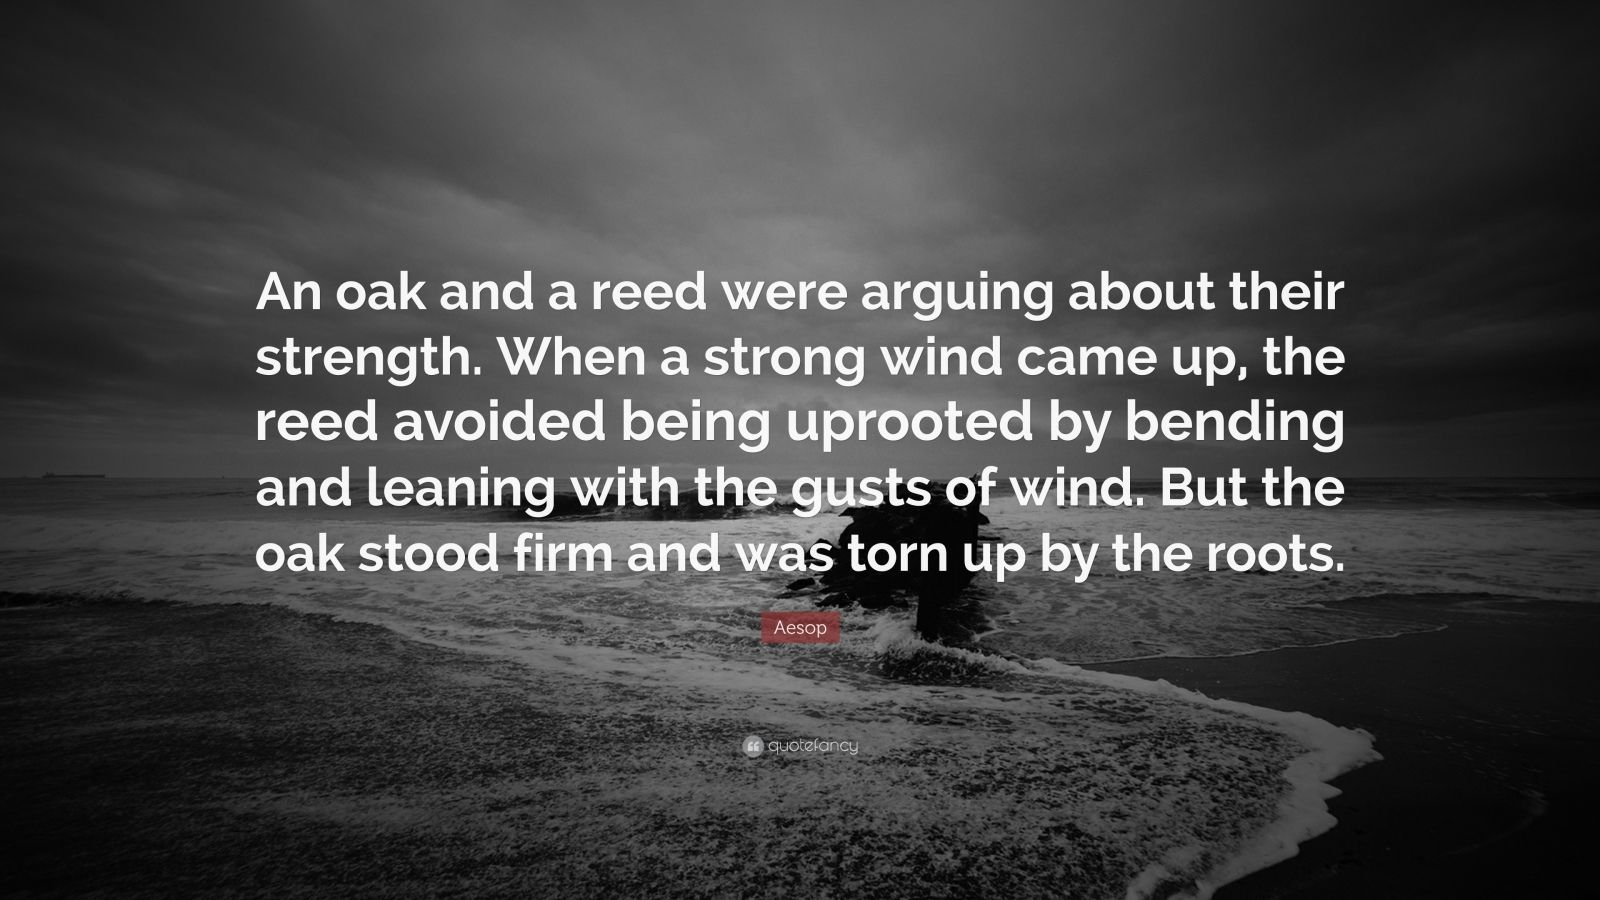 """Aesop Quote: """"An oak and a reed were arguing about their strength. When a strong wind came up, the reed avoided being uprooted by bending and leaning with the gusts of wind. But the oak stood firm and was torn up by the roots."""""""